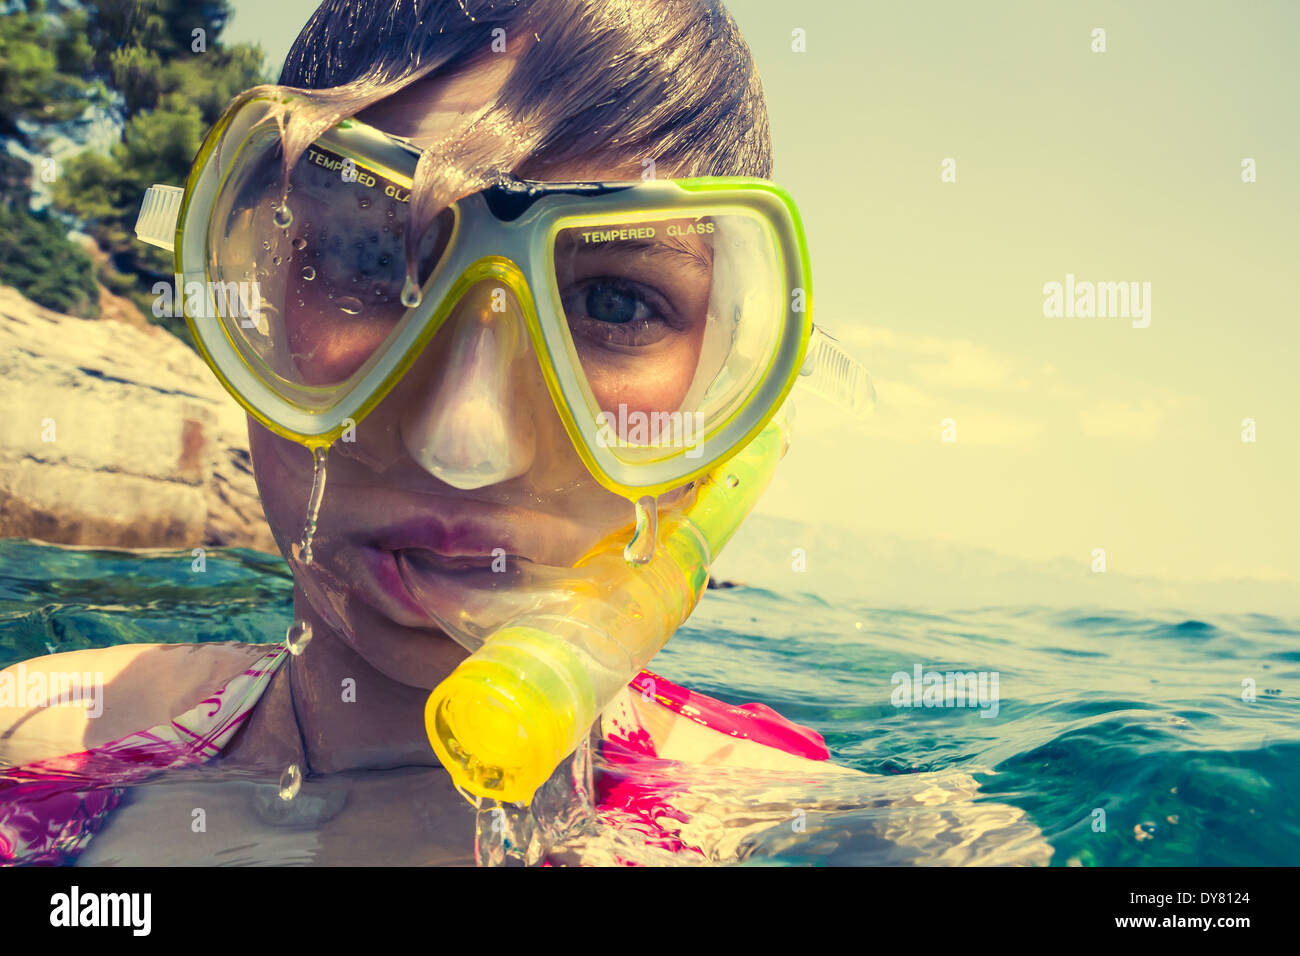 Croatia, Brac, Sumartin, Teenage girl in water with diving goggles and snorkel Stock Photo